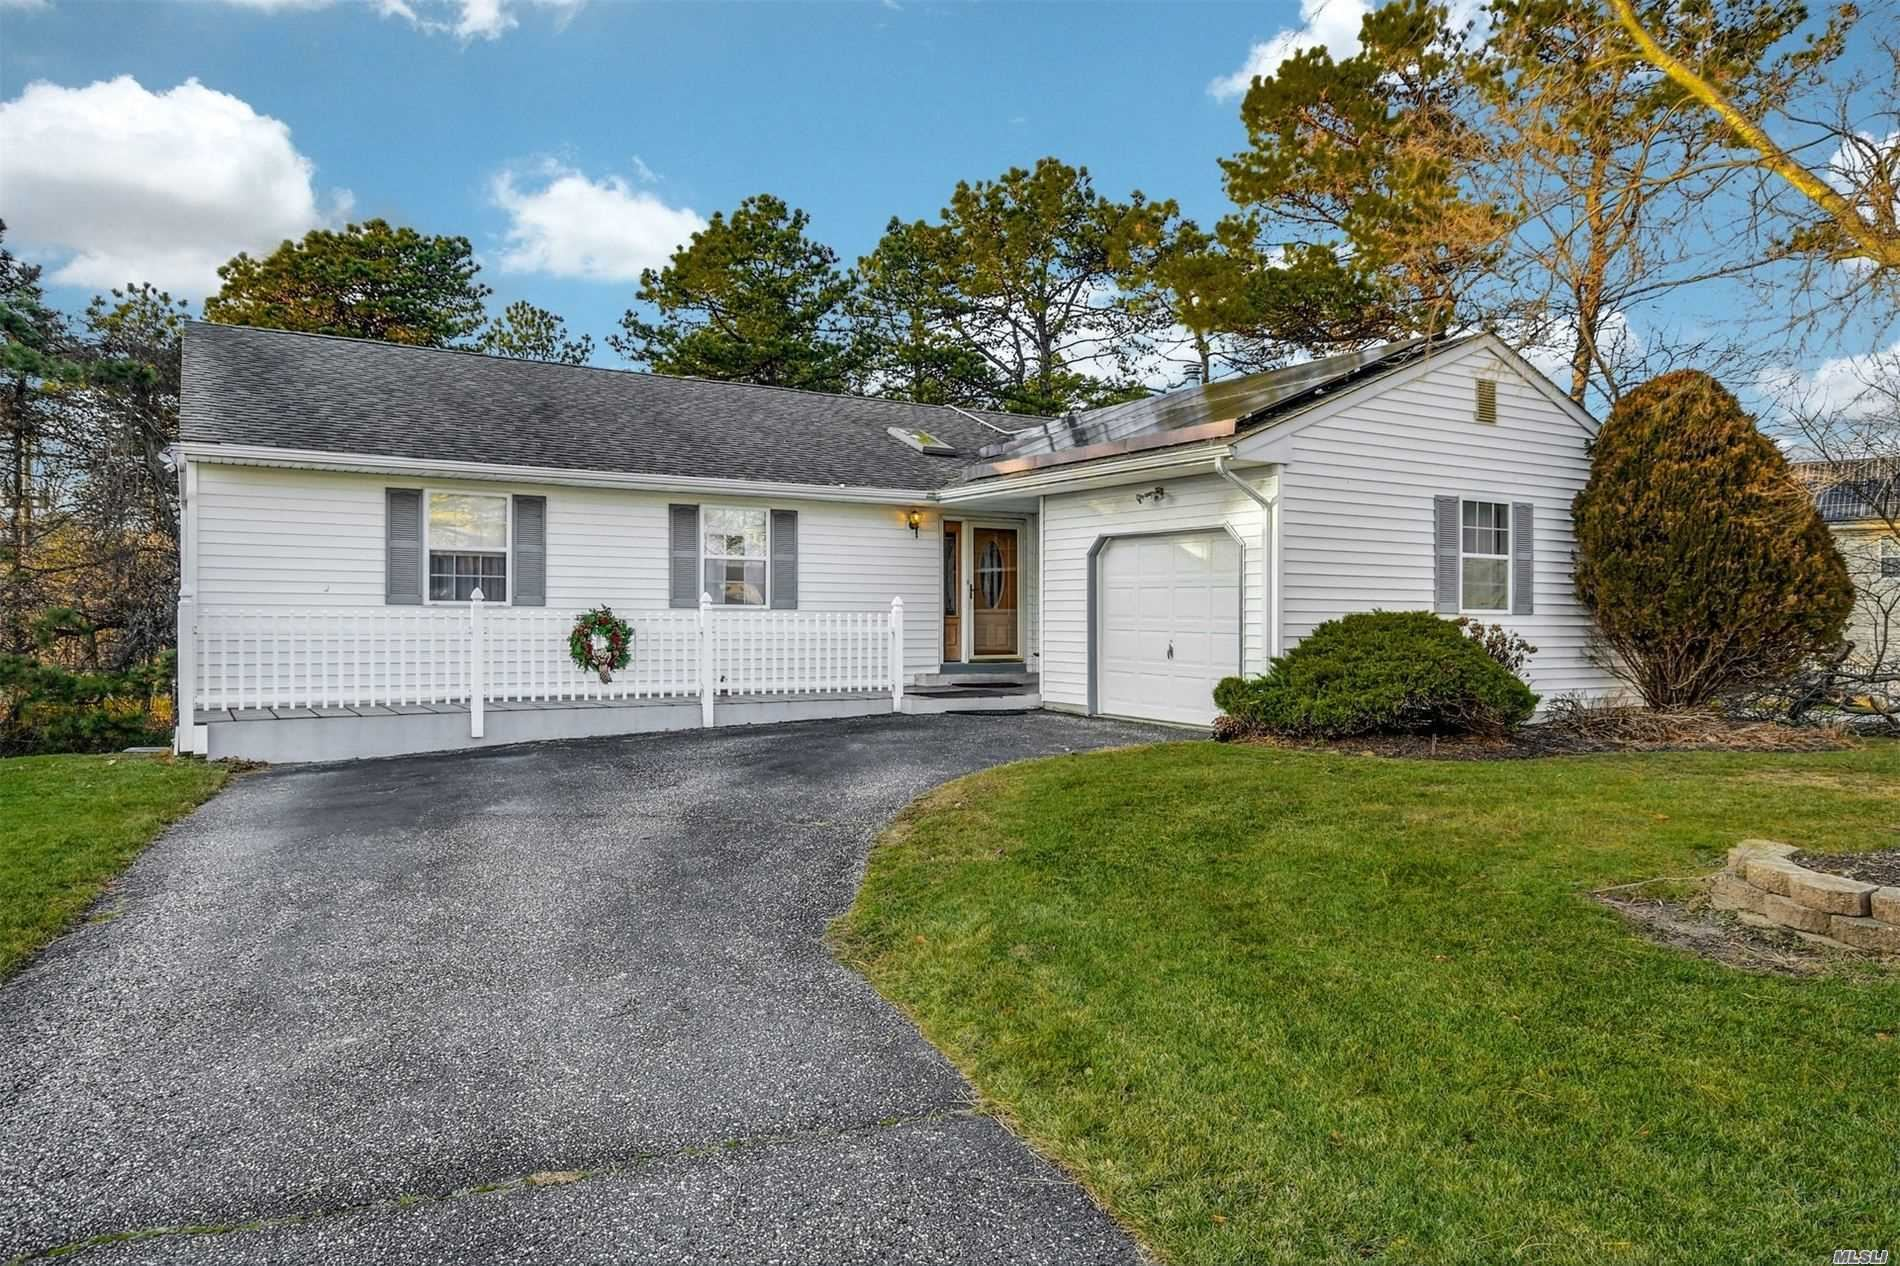 21 Sunbonnet Lane, Bellport, NY 11713 - MLS#: 3187158